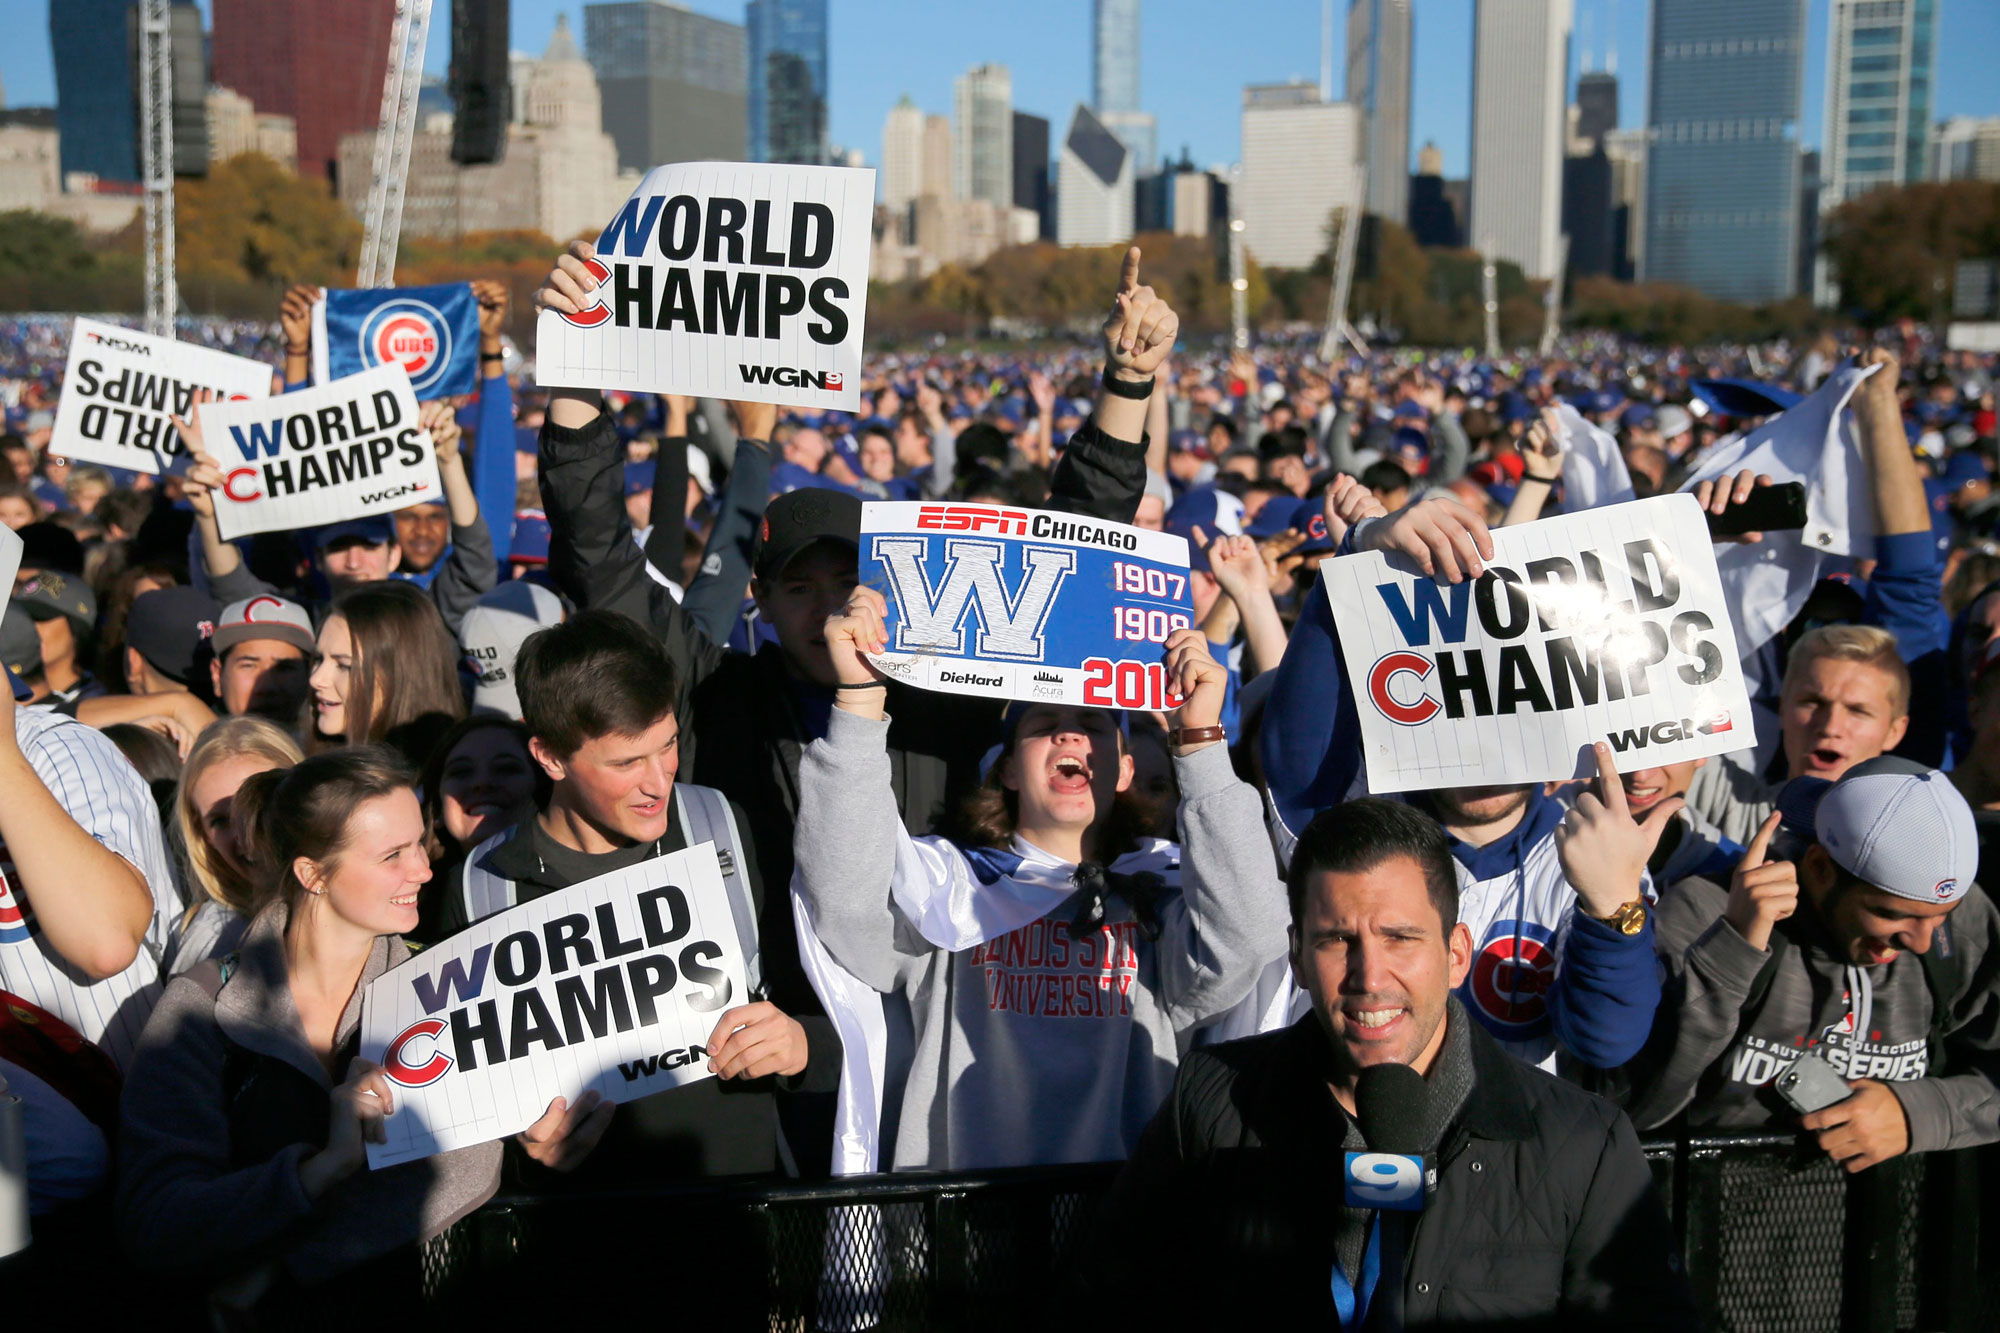 Chicago Cubs fans celebrate before a rally in Grant Park honoring the World Series baseball champions Friday, Nov. 4, 2016, in Chicago. (AP Photo/Charles Rex Arbogast)